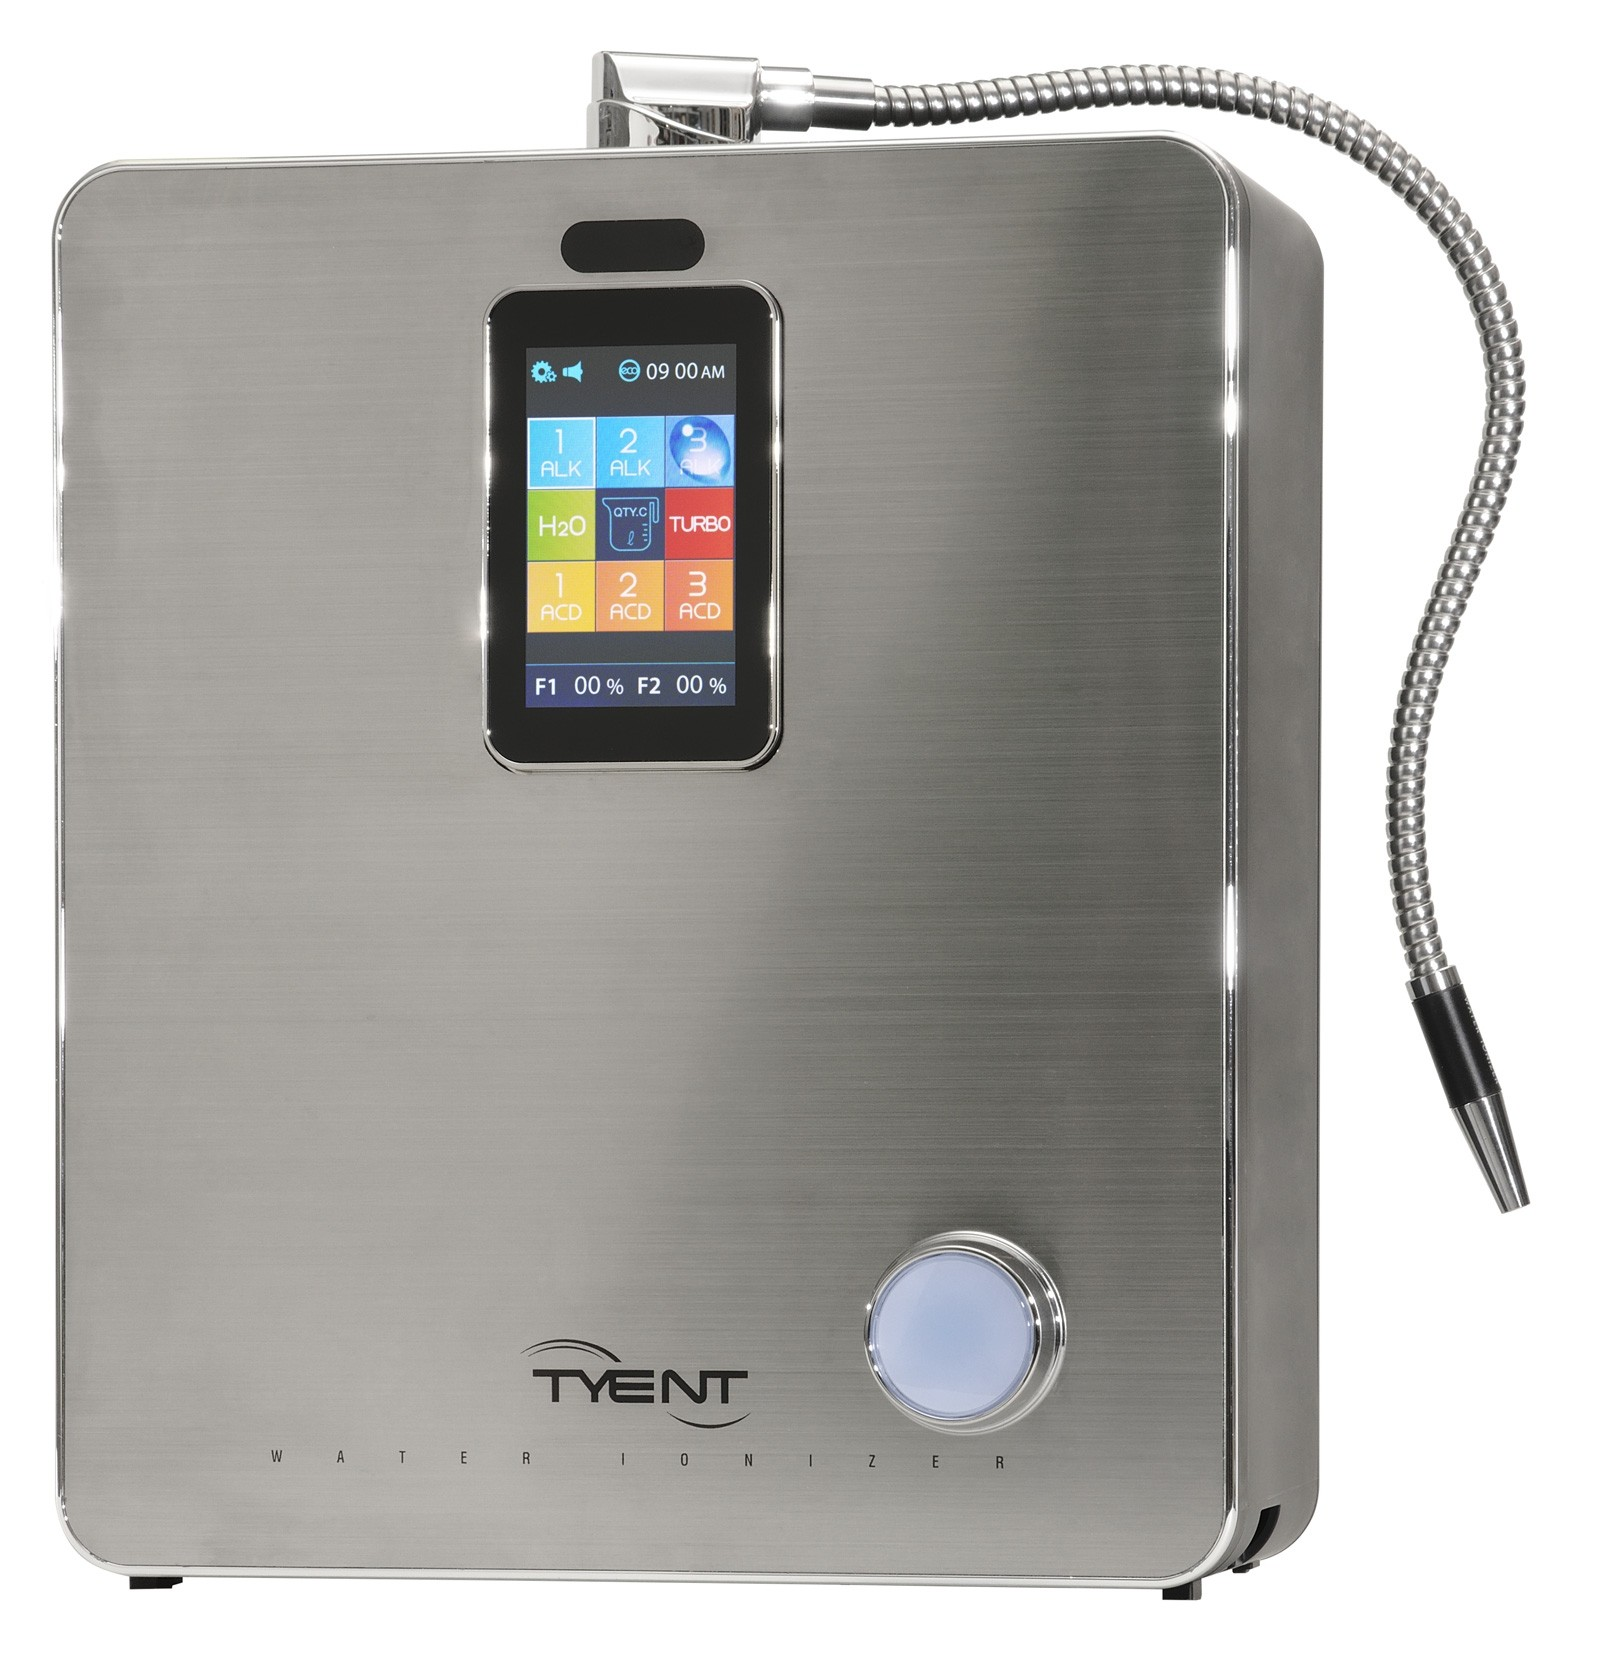 ACE-13 Turbo Water Ionizer - 13 plate water ionizer